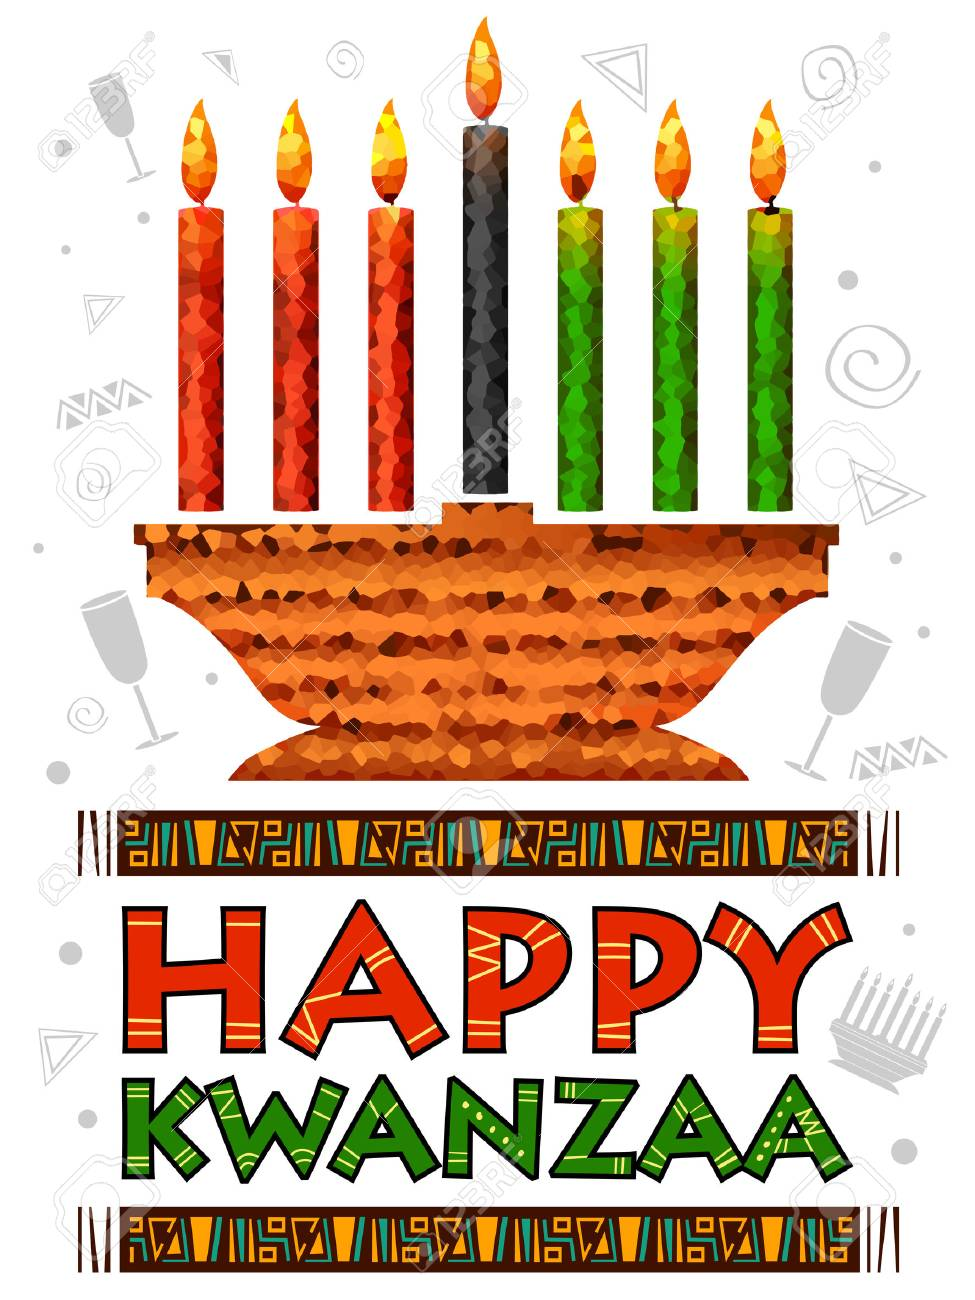 illustration of Happy Kwanzaa greetings for celetion of African.. on map of sociology, map of home, map of thanksgiving, map of valentine's day, map of food, map of africa, map of geography, map of martin luther king, map of dongzhi festival, map of halloween, map of boxing day, map of spring, map of art, map of christmas around the world, map of three kings day, map of hanukkah, map of holi, map of mischief night, map of easter, map of holiday,